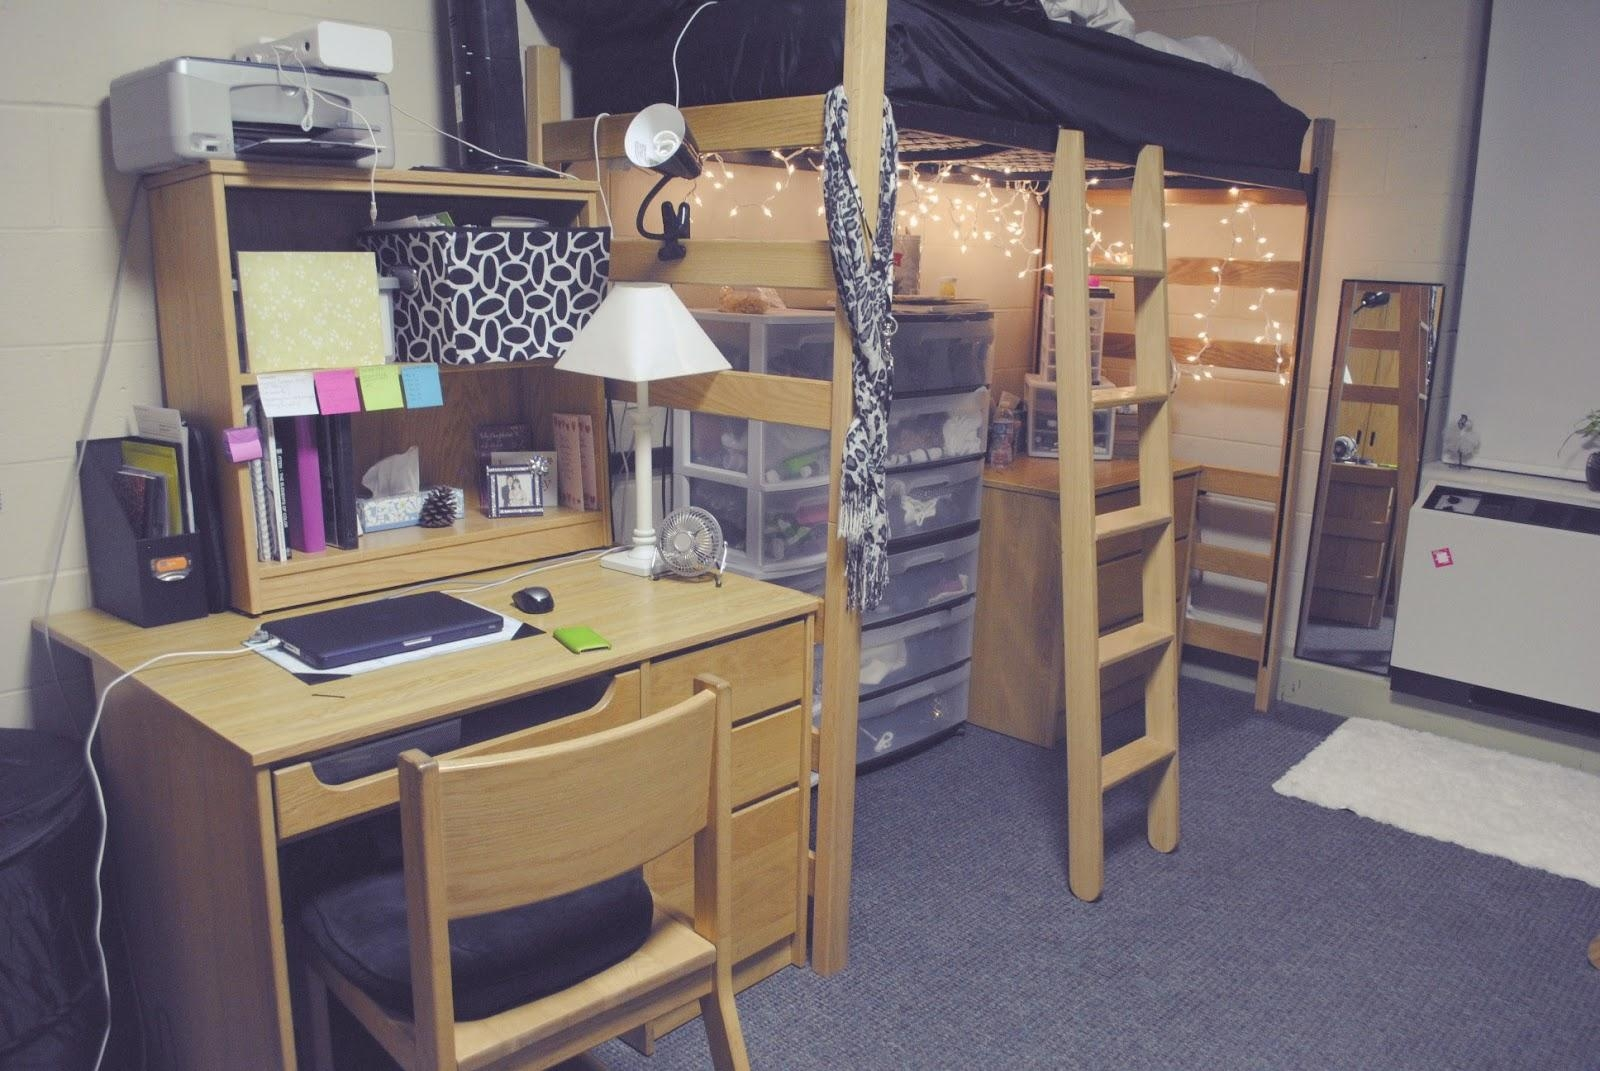 Minimalist Dorm Decorating Ideas Along With Compact Features And Pertaining To College Dorm Wall Art (Image 19 of 20)